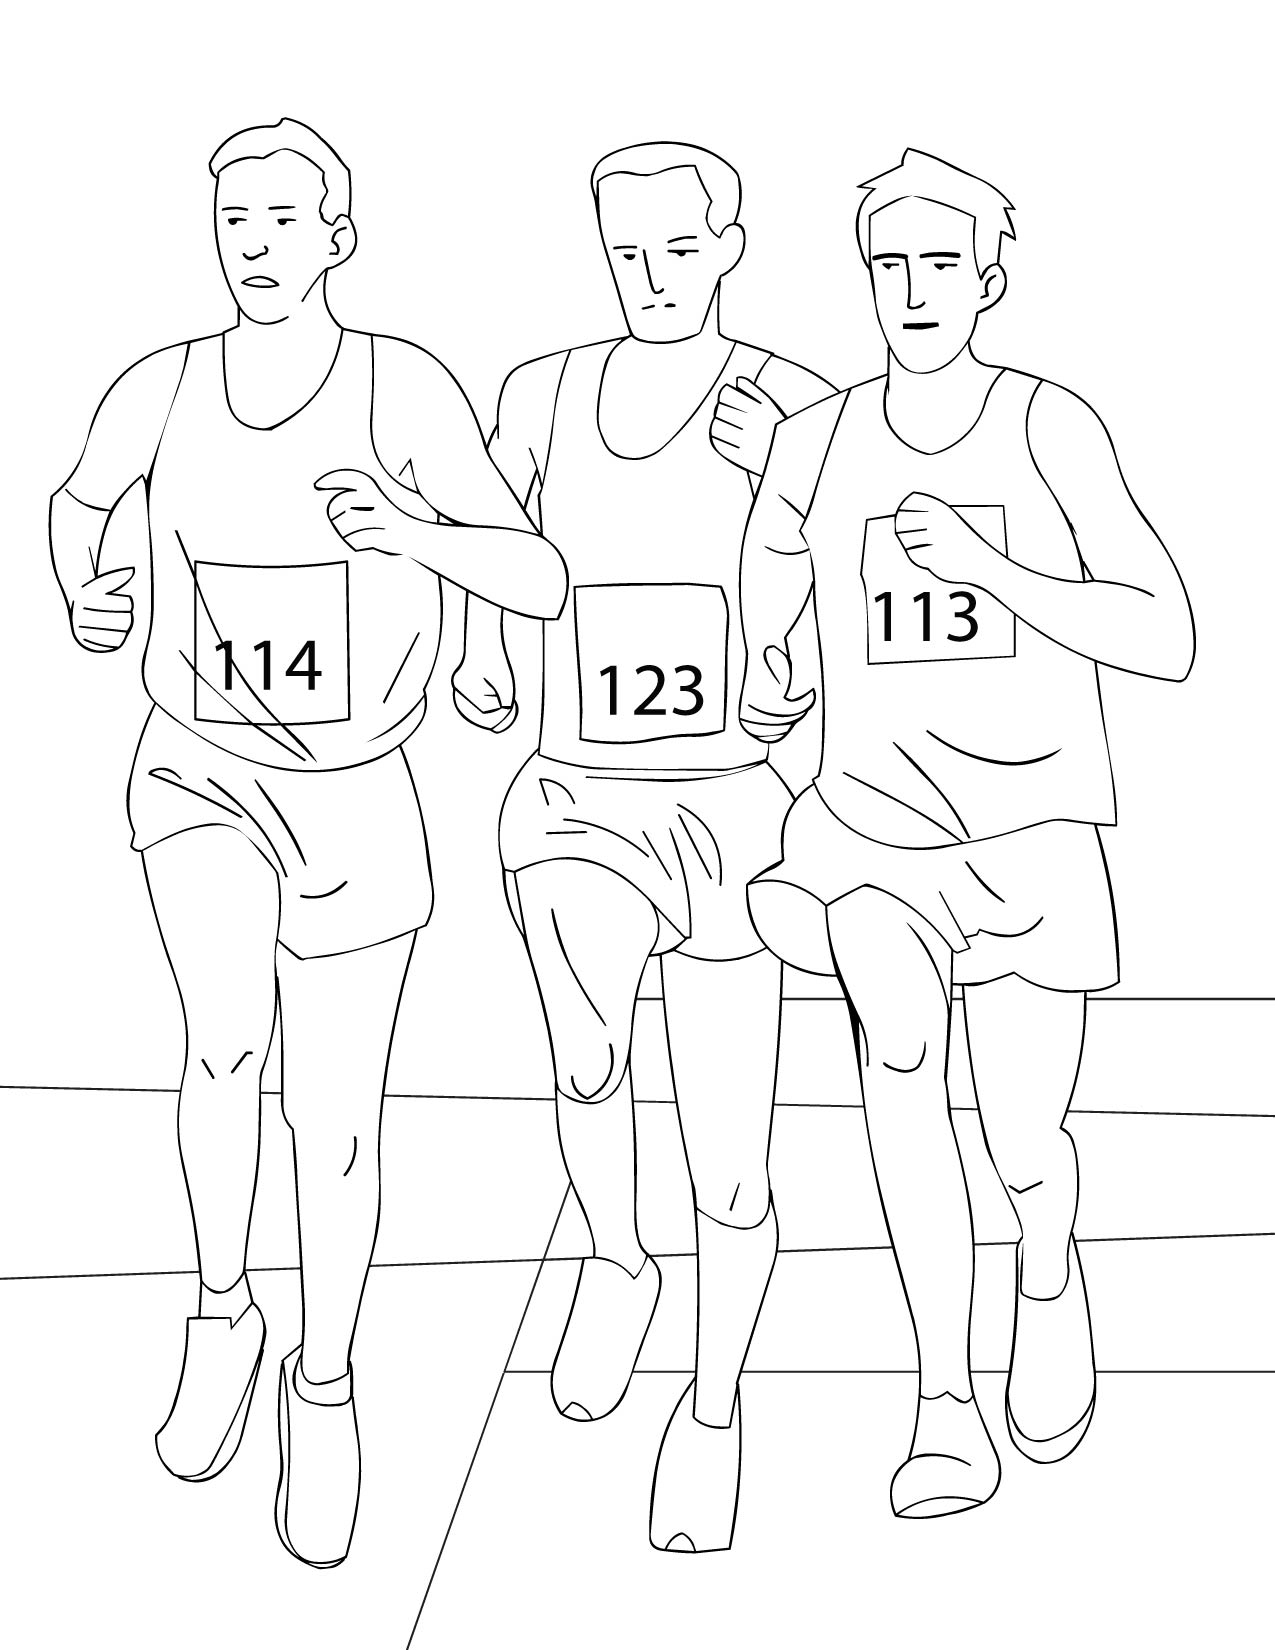 running a race coloring pages - photo#26